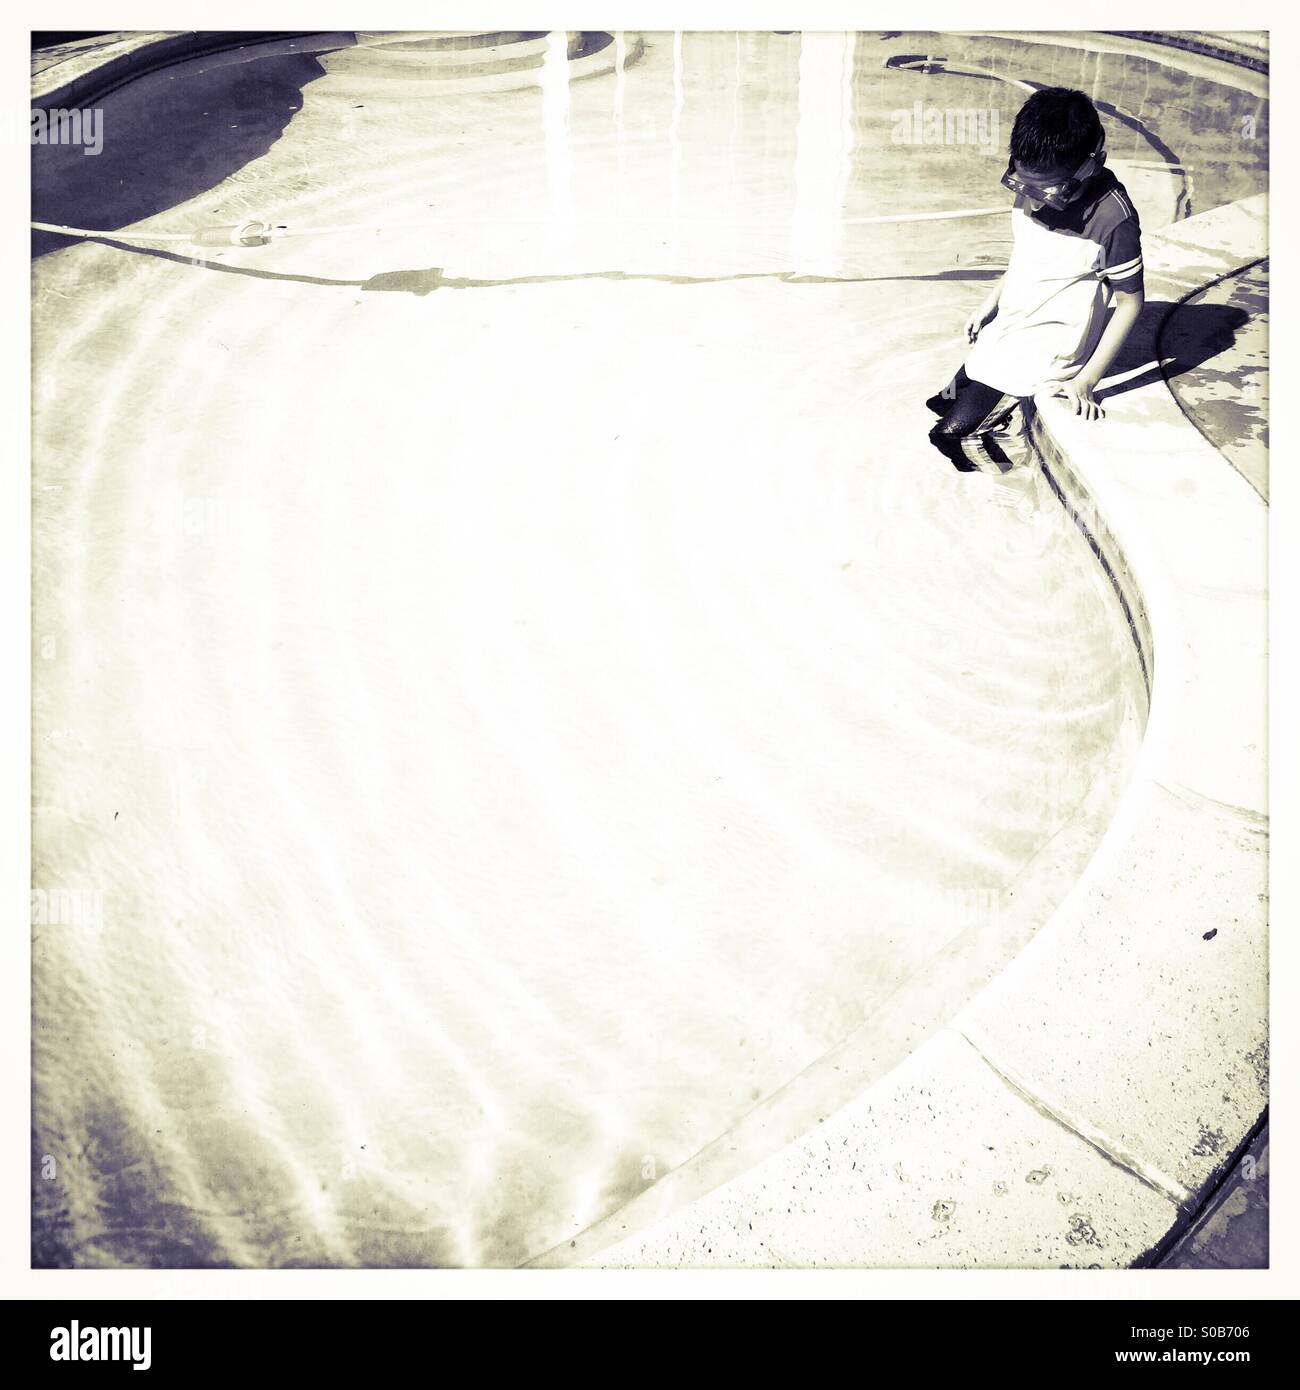 A seven year old boy wearing clothes and a swimming mask sits on the edge of a swimming pool. - Stock Image